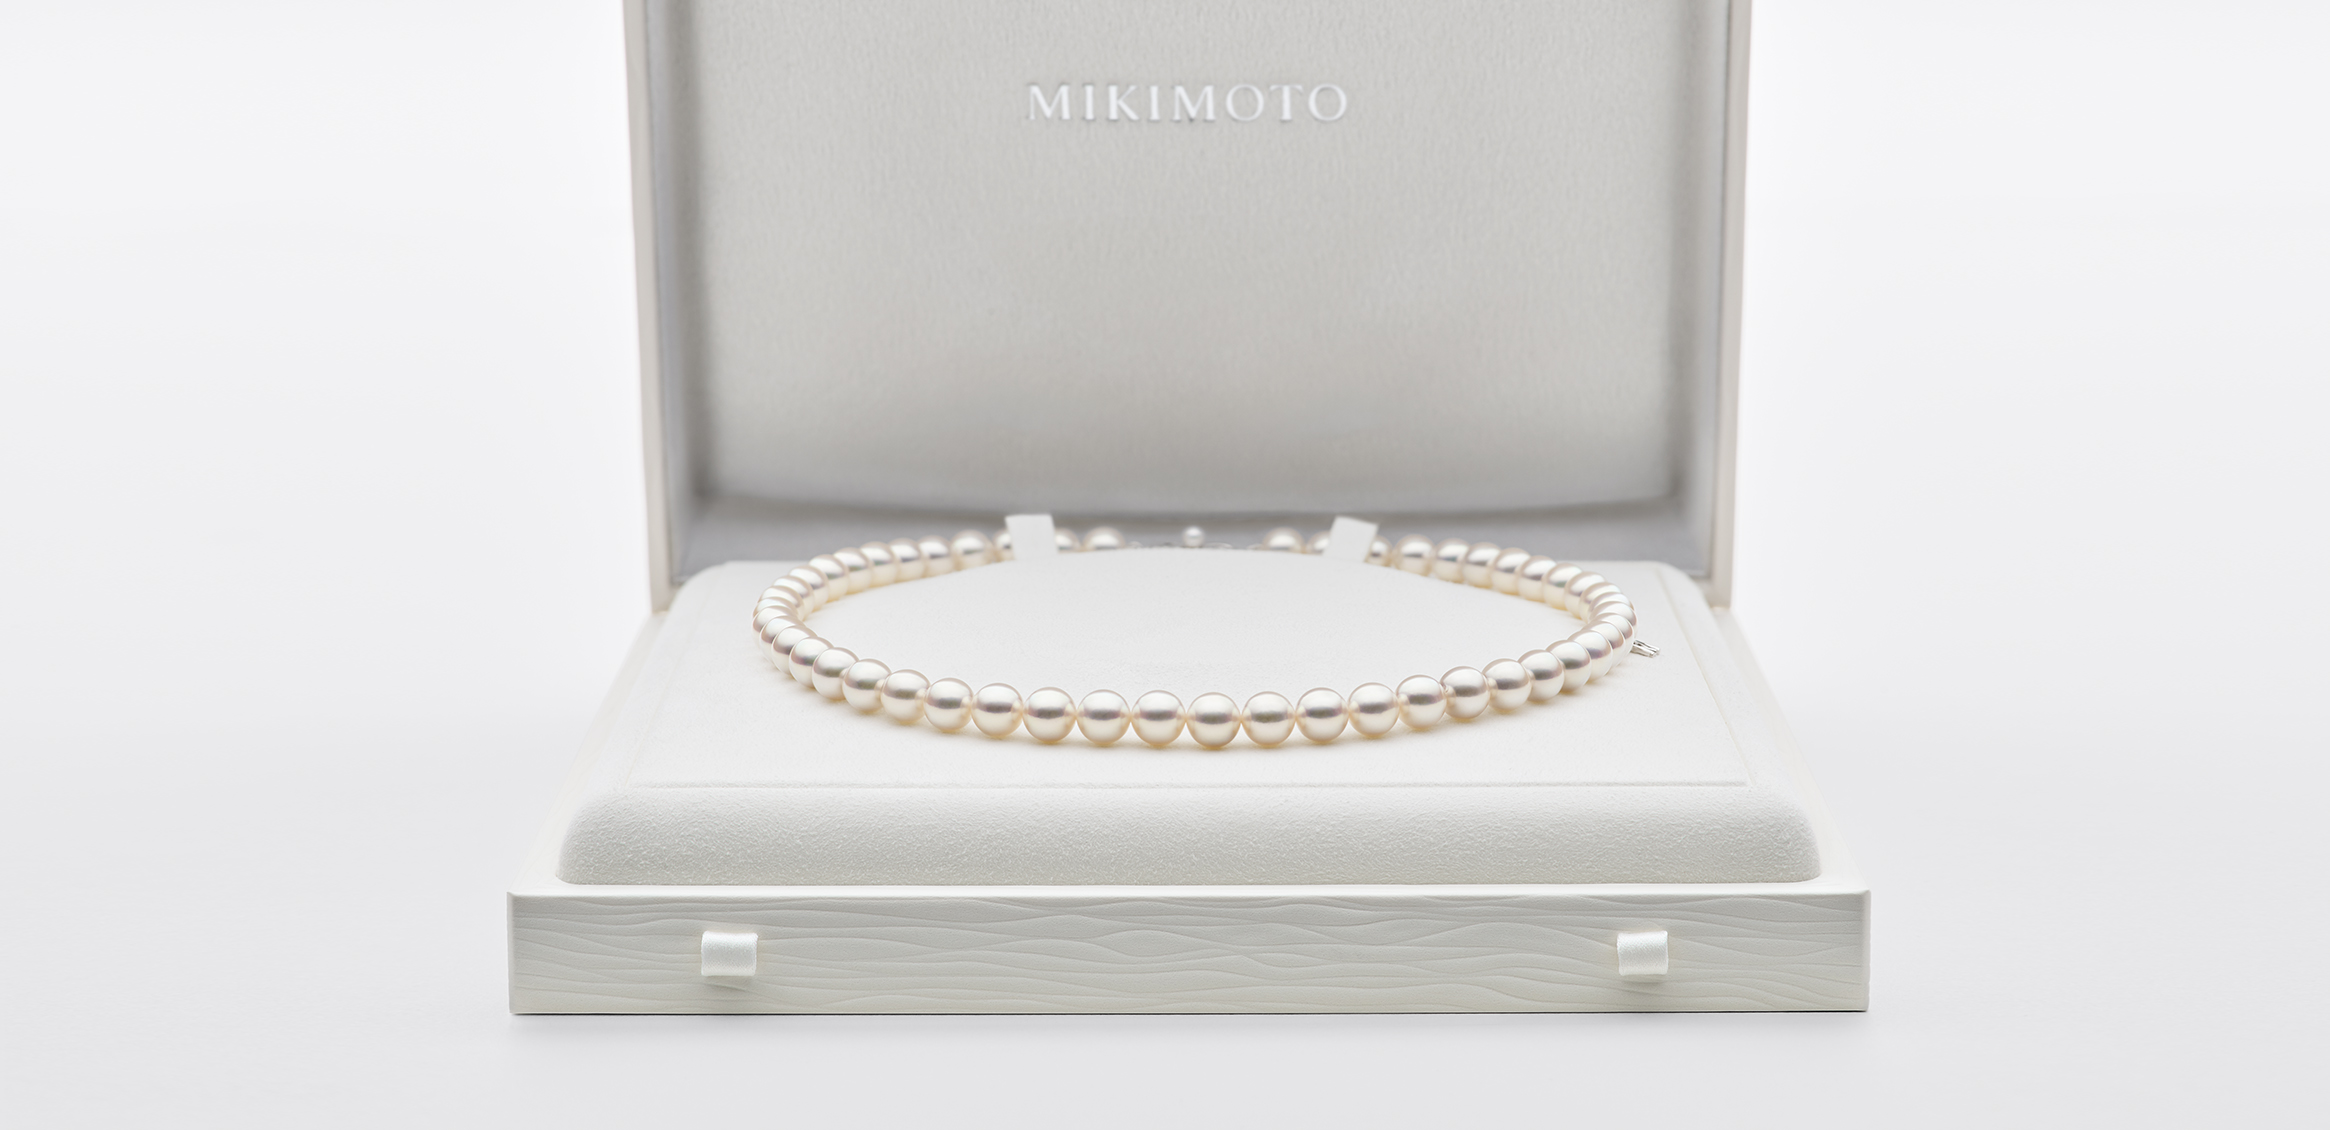 MIKIMOTO Package2枚目